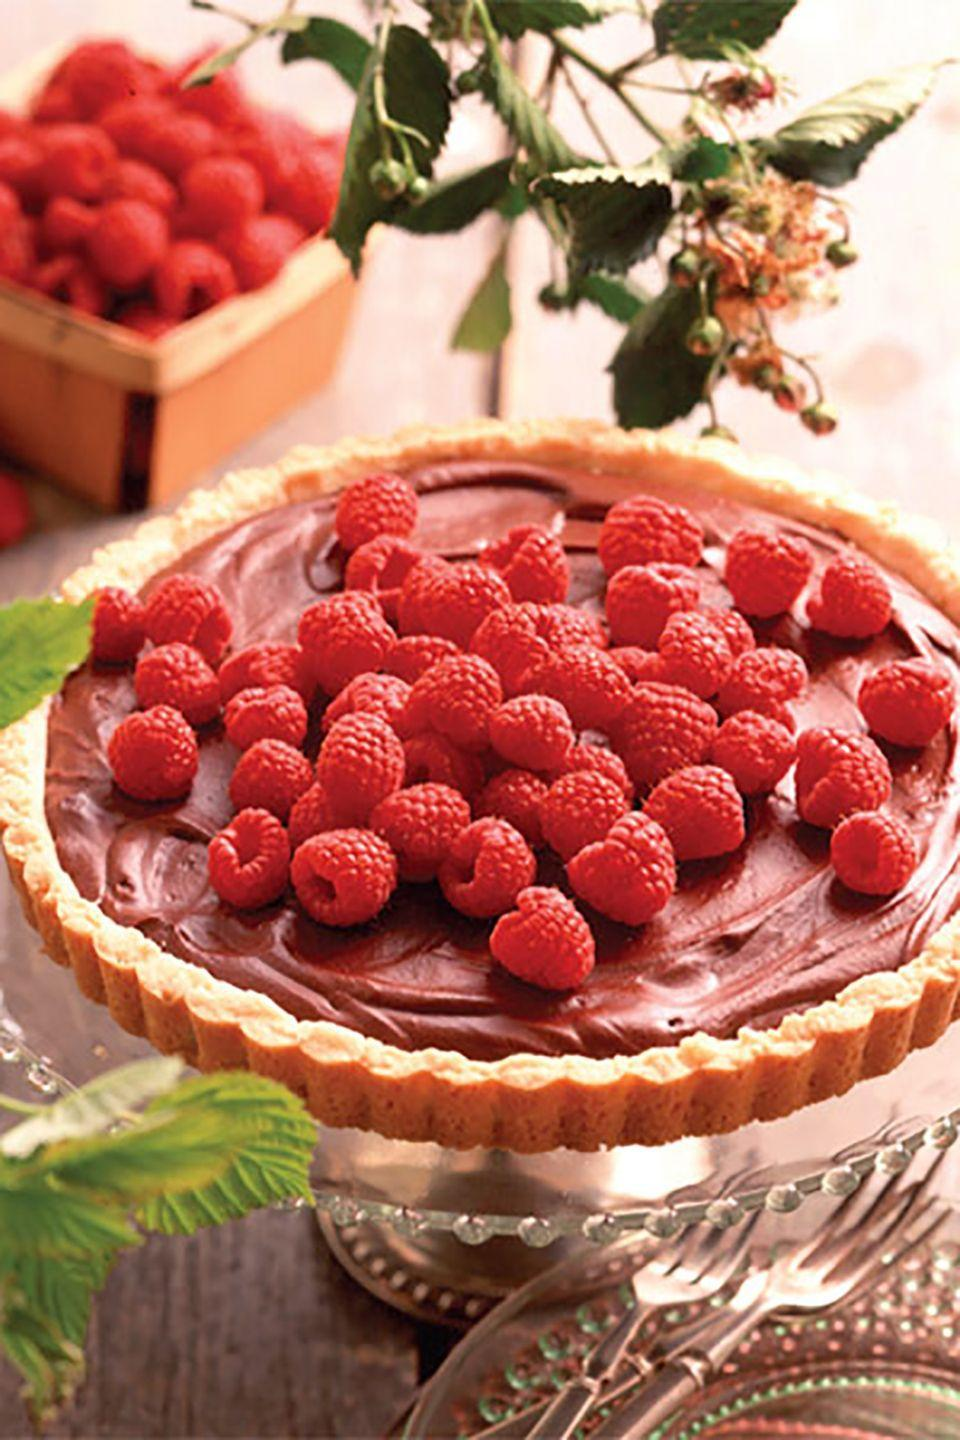 "<p>The rich chocolate filling topped with fresh raspberries is delicious enough on its own, but the buttery shortbread crust adds a savory crunch that makes this dessert irresistible. </p><p><strong><a href=""https://www.countryliving.com/food-drinks/recipes/a7130/raspberry-ganache-tart-441/"" rel=""nofollow noopener"" target=""_blank"" data-ylk=""slk:Get the recipe"" class=""link rapid-noclick-resp"">Get the recipe</a>.</strong></p>"